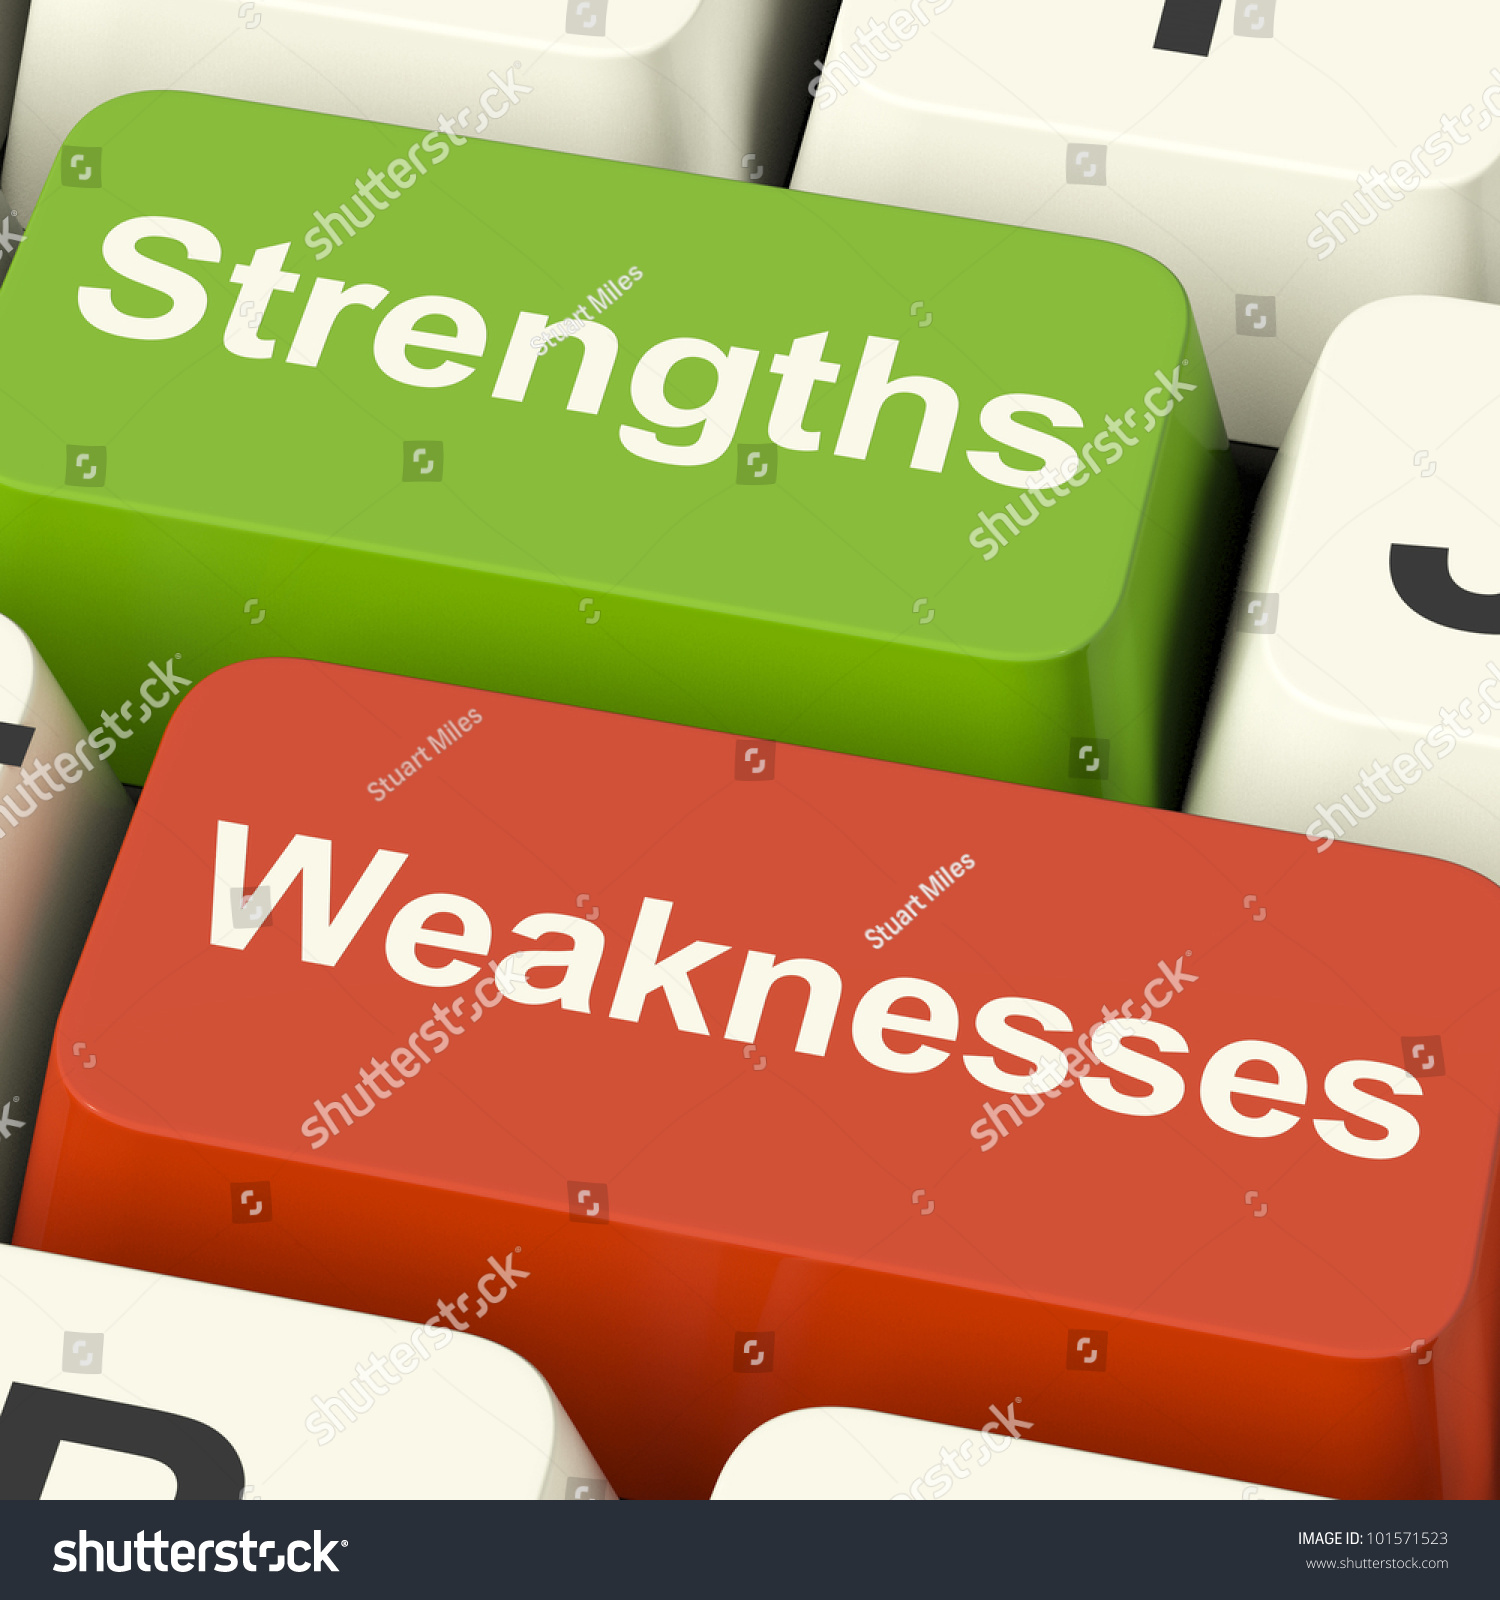 strengths and weaknesses computer keys shows performance or save to a lightbox